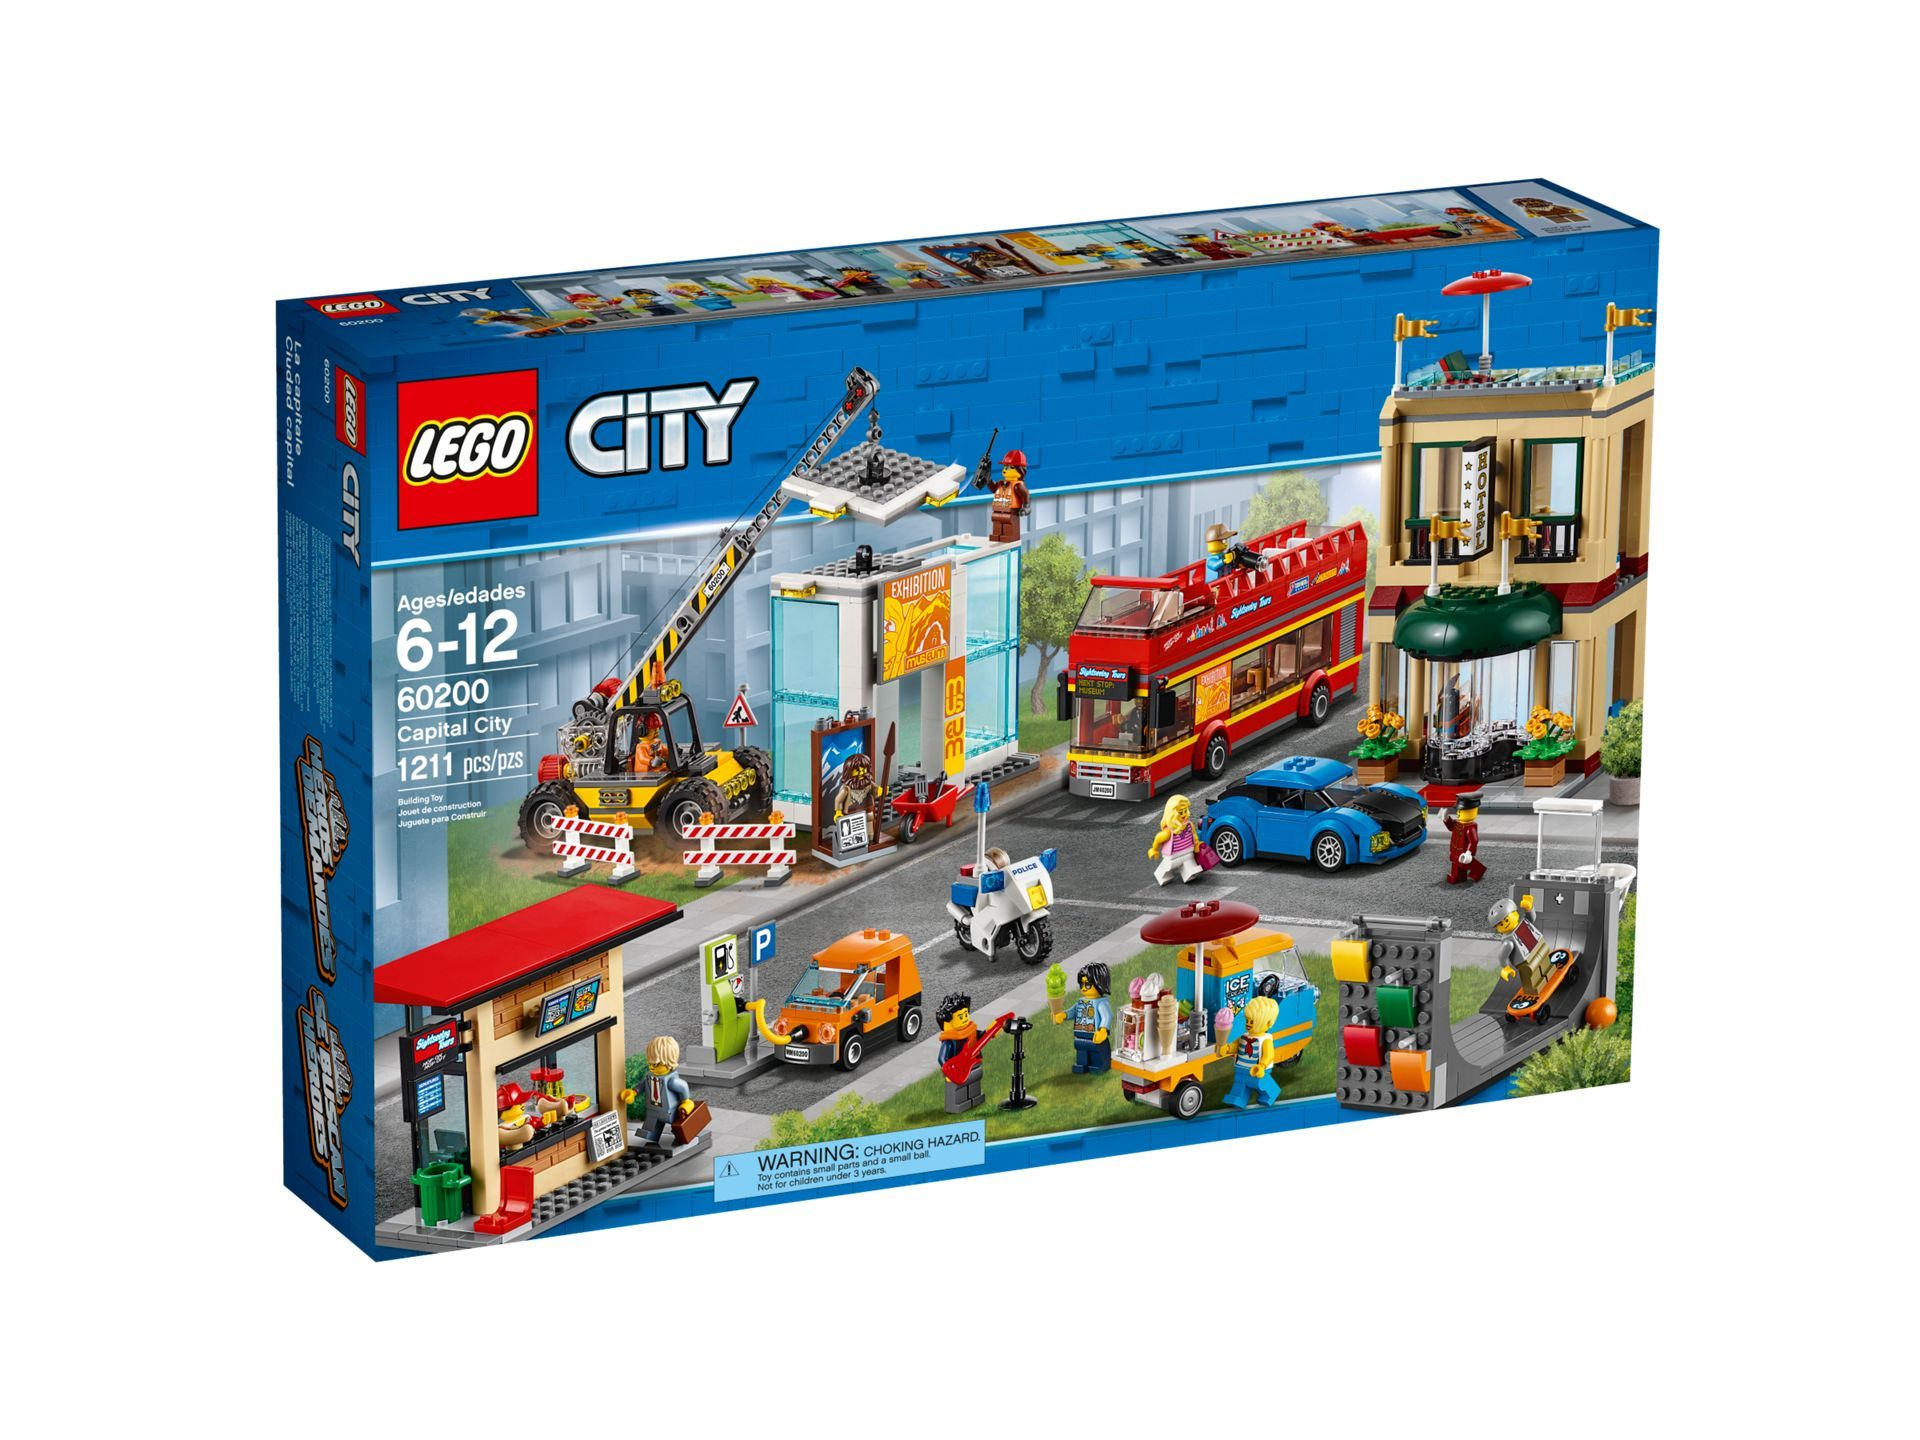 lego city neuheiten 2 halbjahr 2018 ab 1 juni 2018. Black Bedroom Furniture Sets. Home Design Ideas